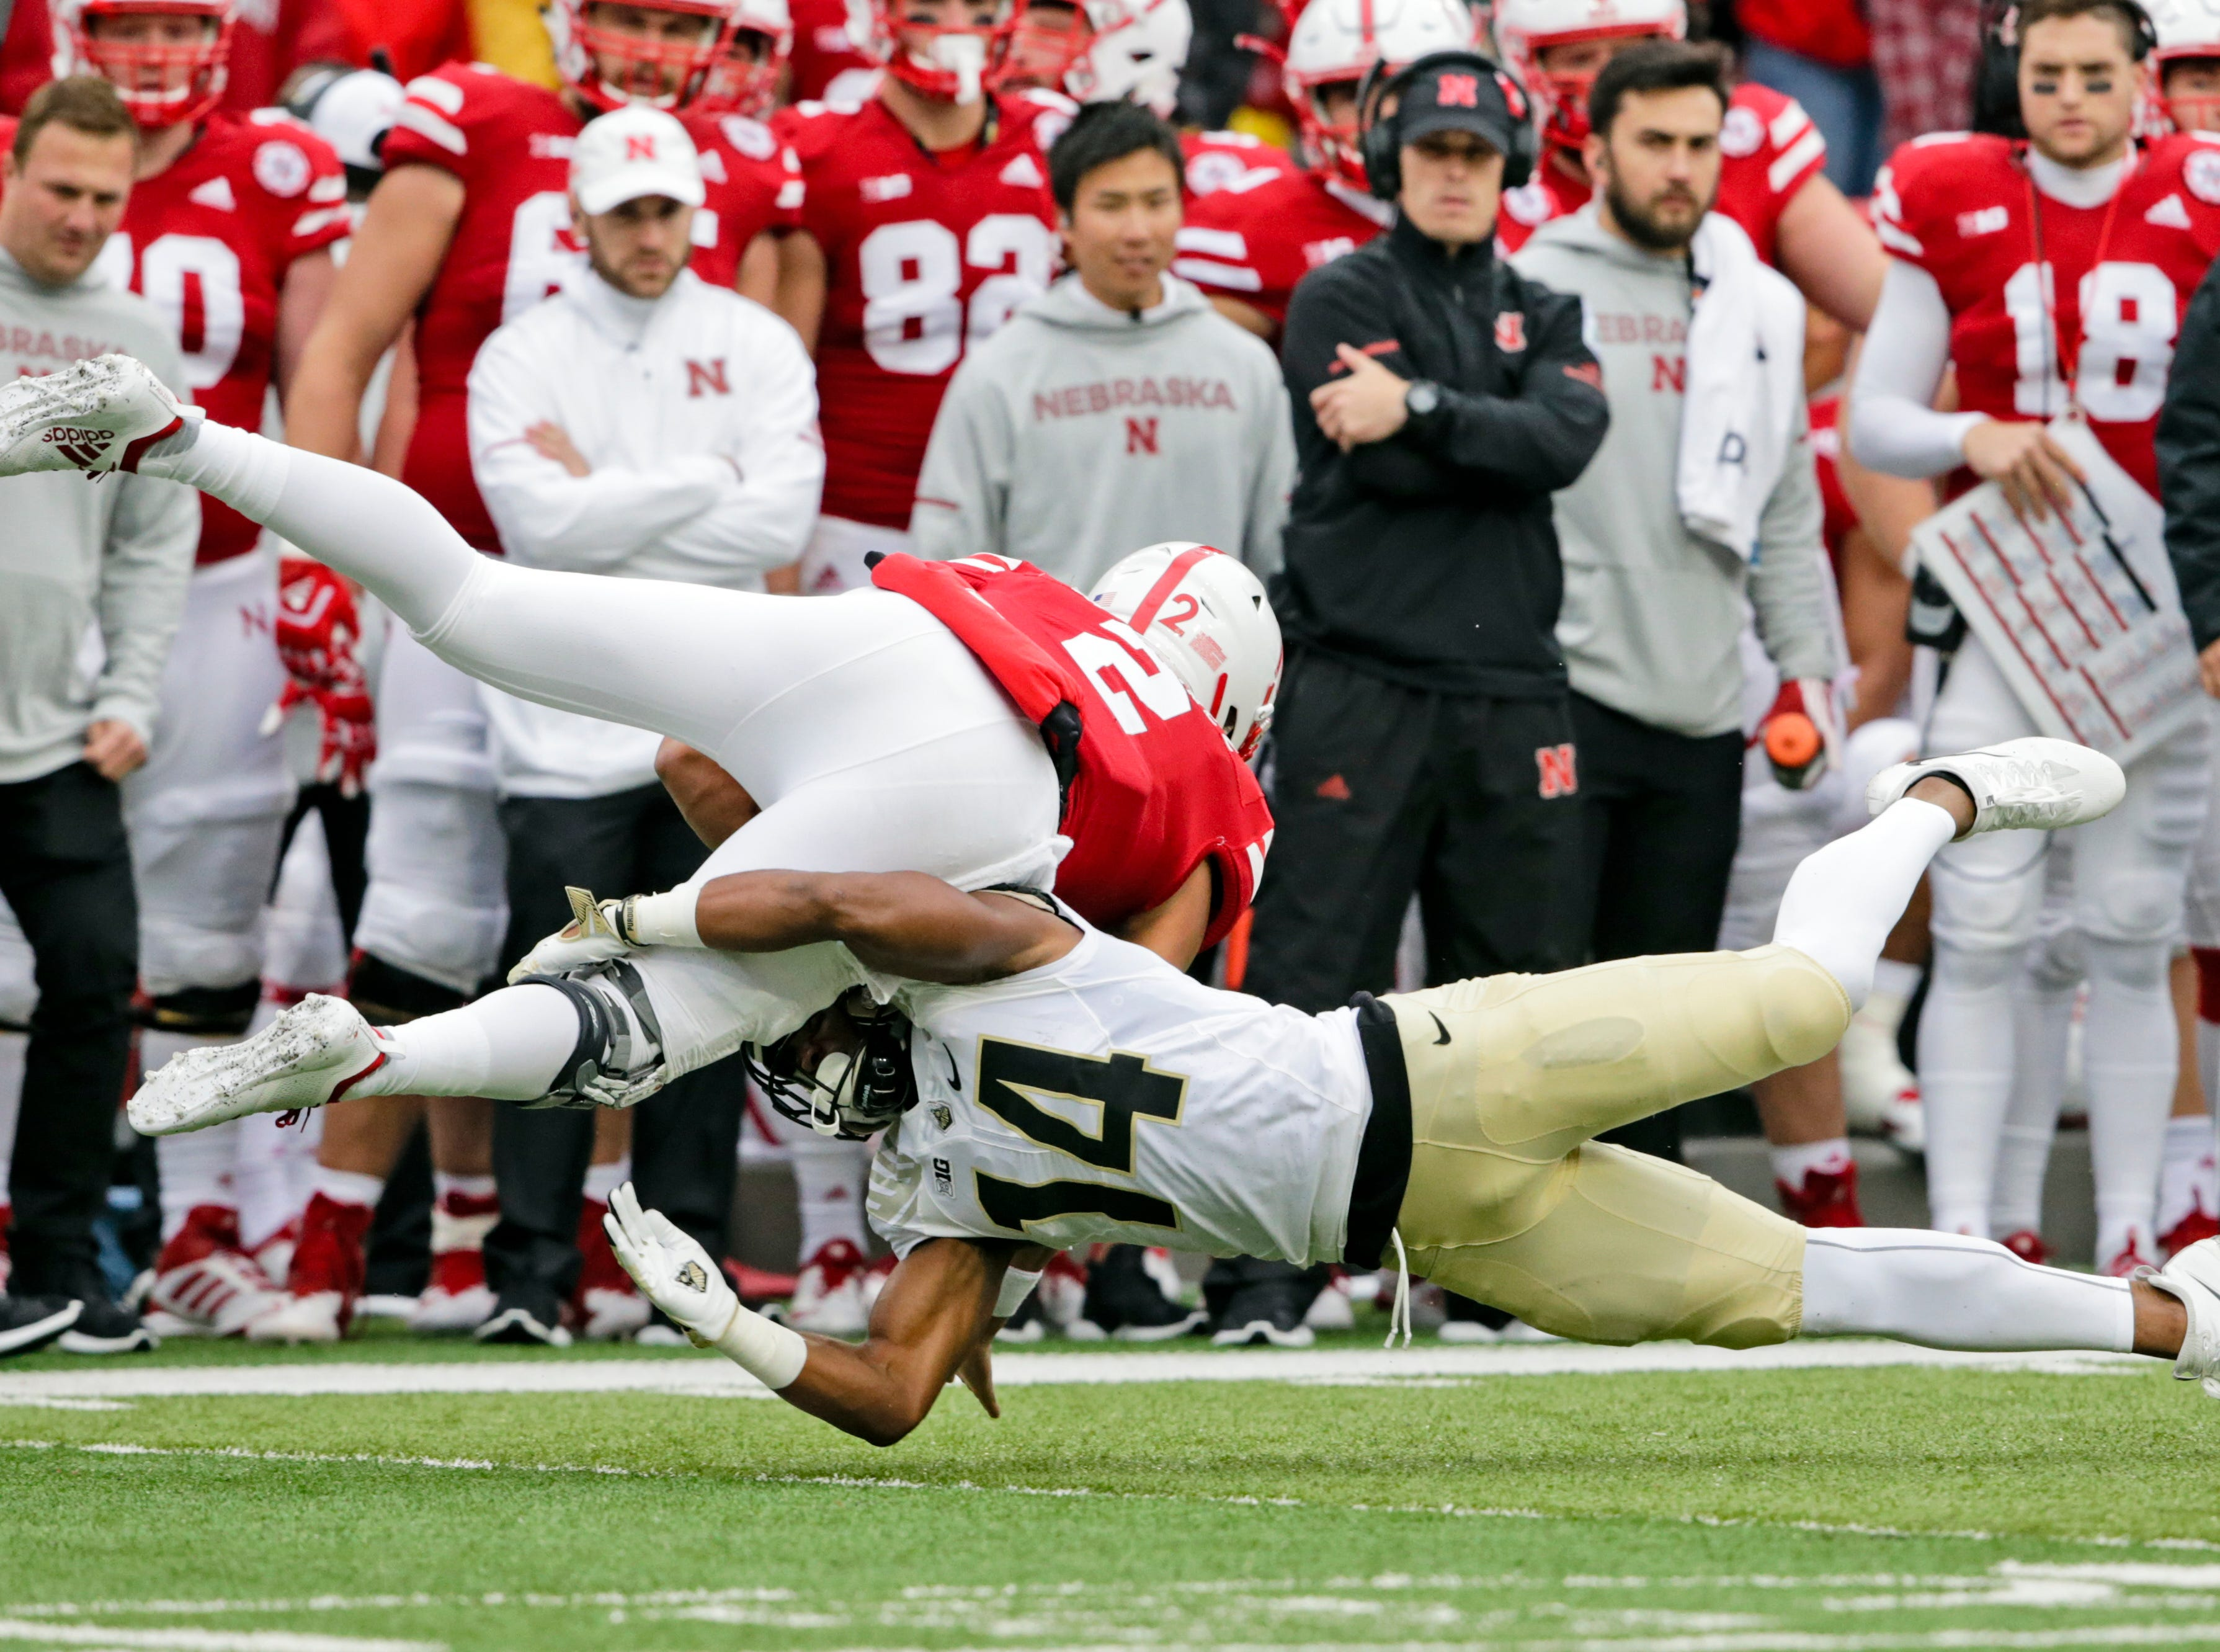 Purdue cornerback Antonio Blackmon (14) tackles Nebraska quarterback Adrian Martinez (2) during the first half of an NCAA college football game in Lincoln, Neb., Saturday, Sept. 29, 2018. (AP Photo/Nati Harnik)